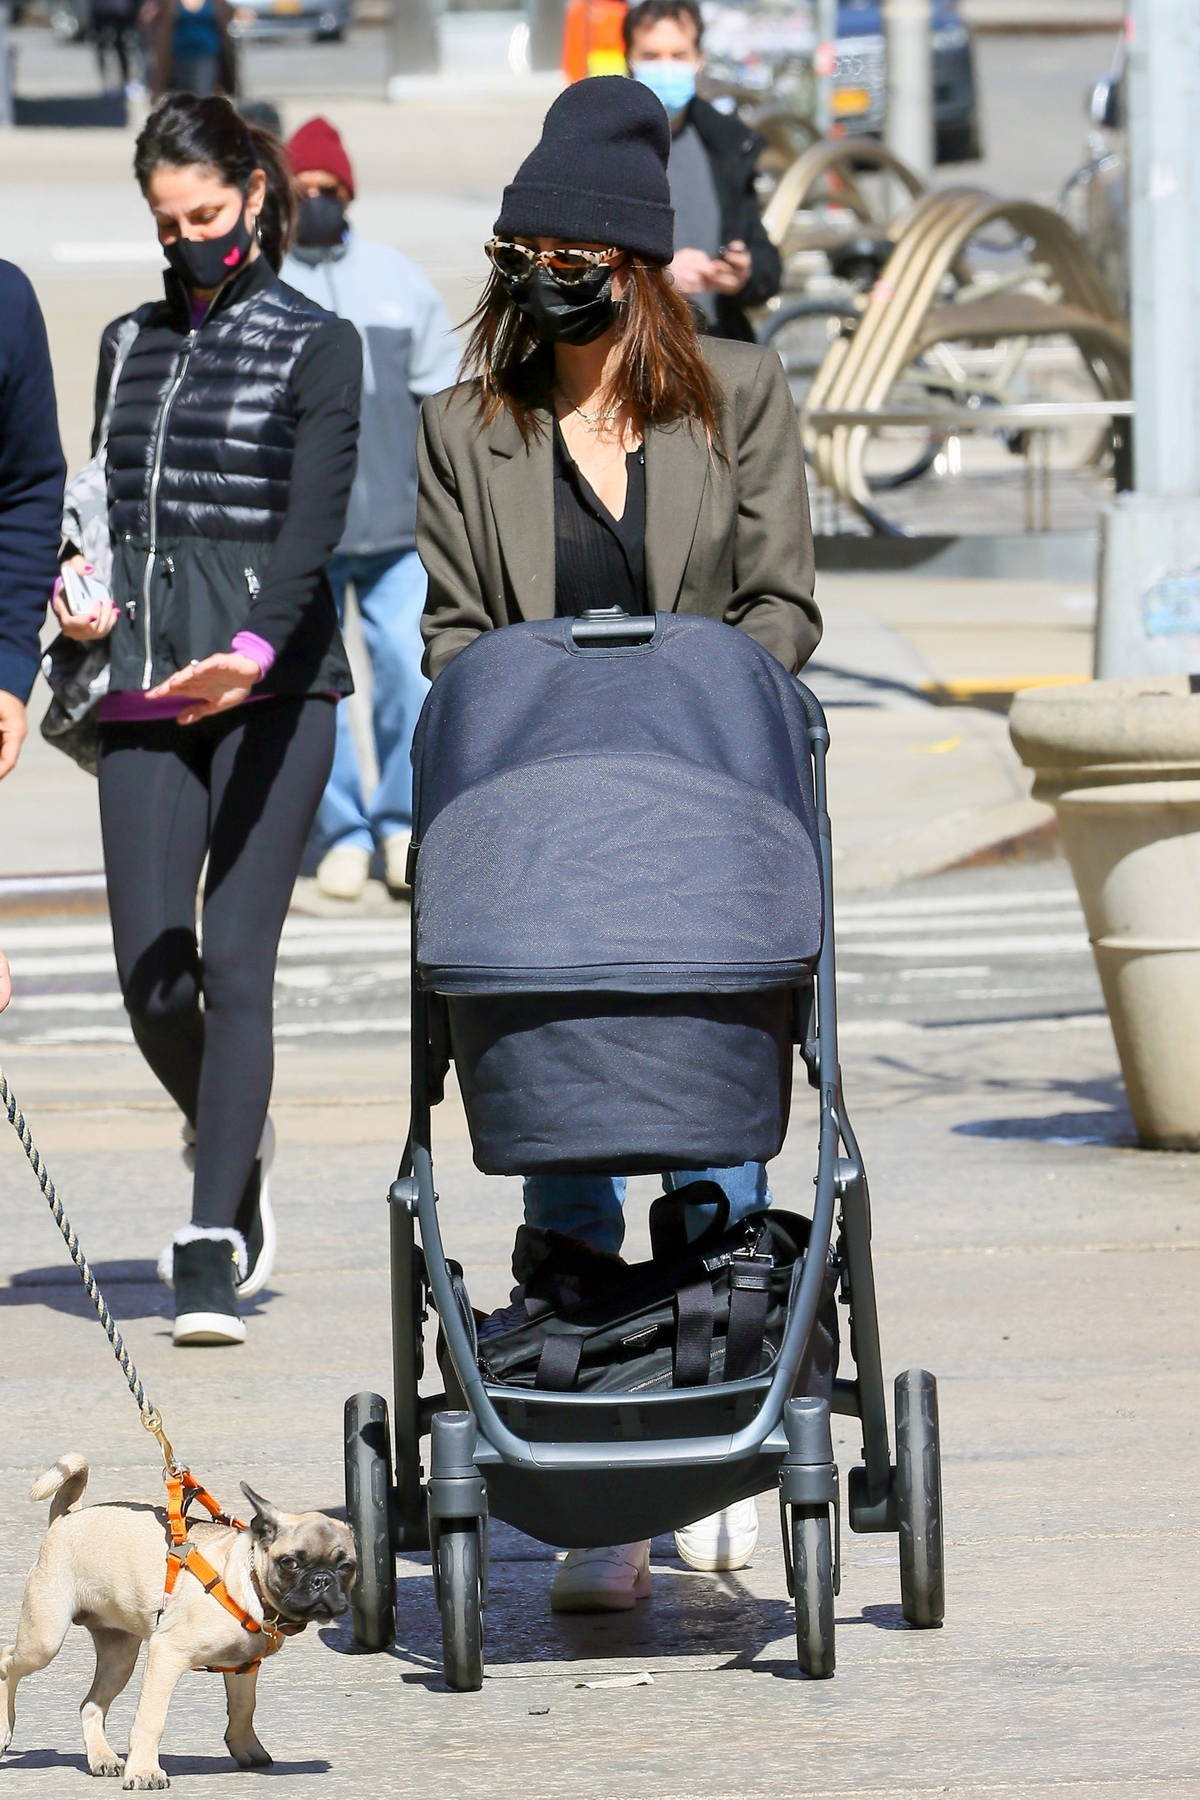 Emily Ratajkowski enjoys a stroll with her newborn baby after having lunch at the Oden in New York City